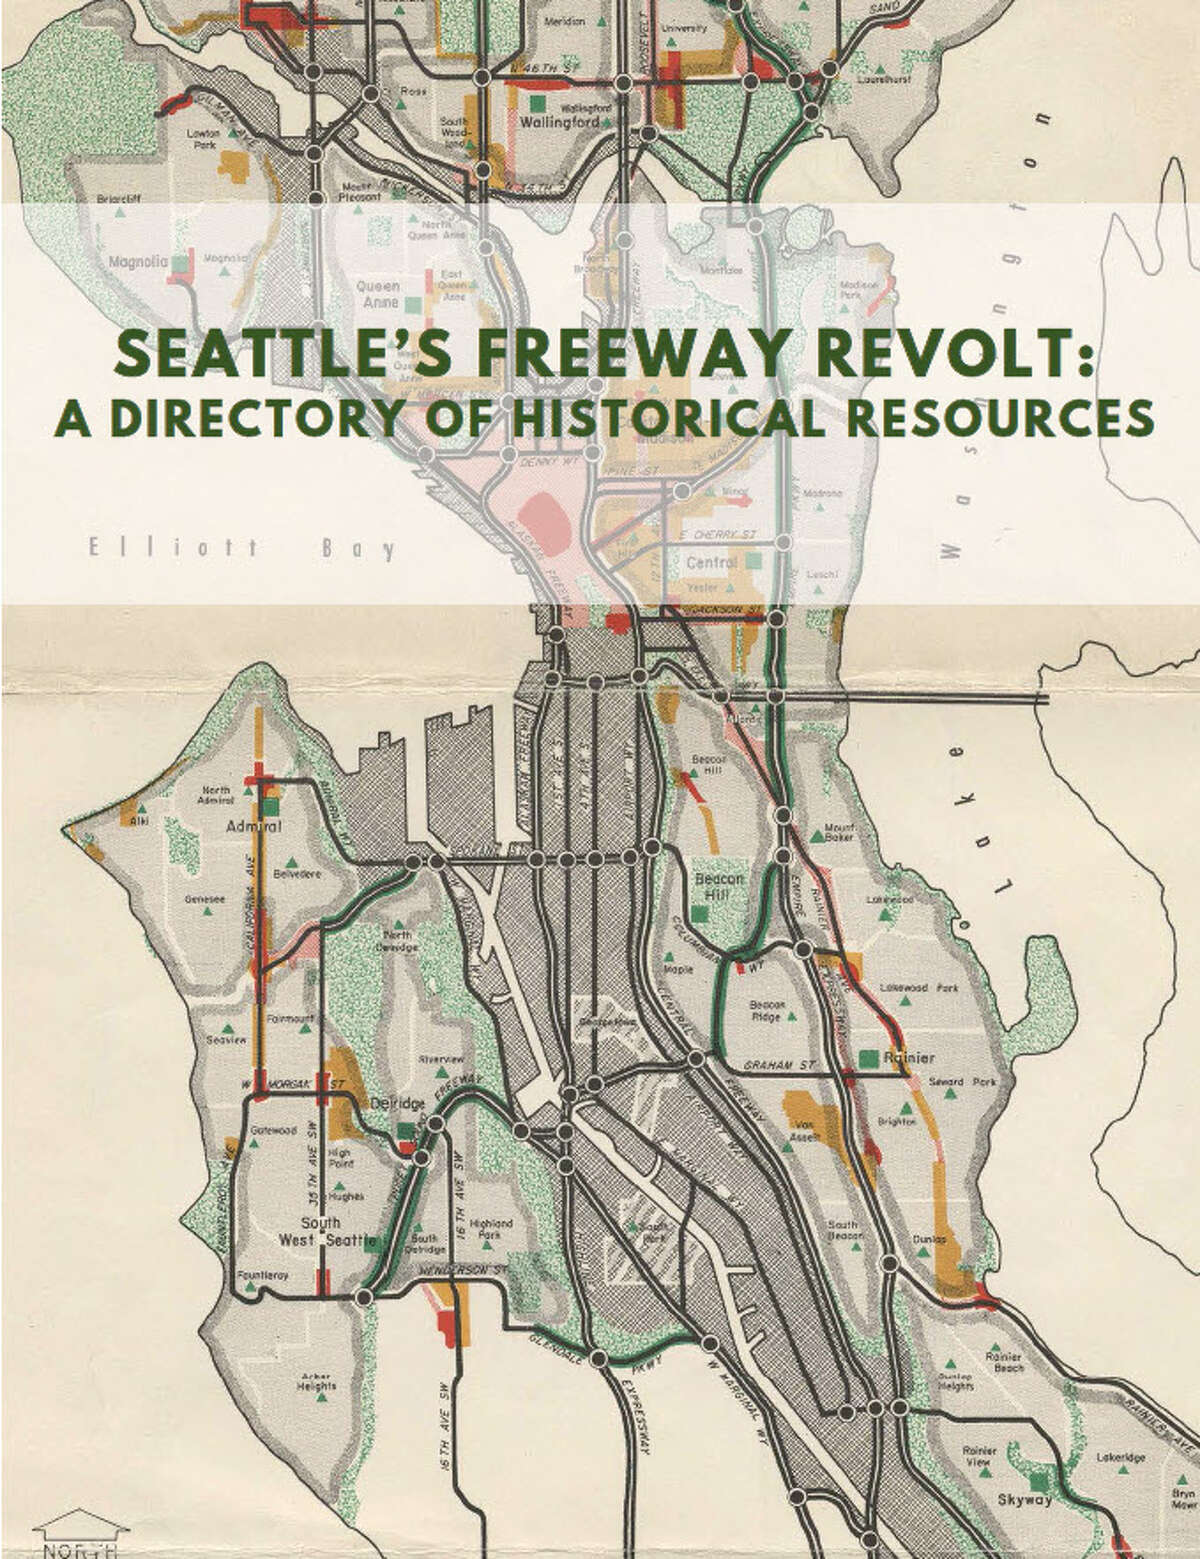 A bevy of freeways would have smashed through several Seattle neighborhoods had it not been for the efforts of activists fighting against it in what came to be called the Seattle freeway revolt. Now, it's much easier to study the history of the movement in this directory recently created.